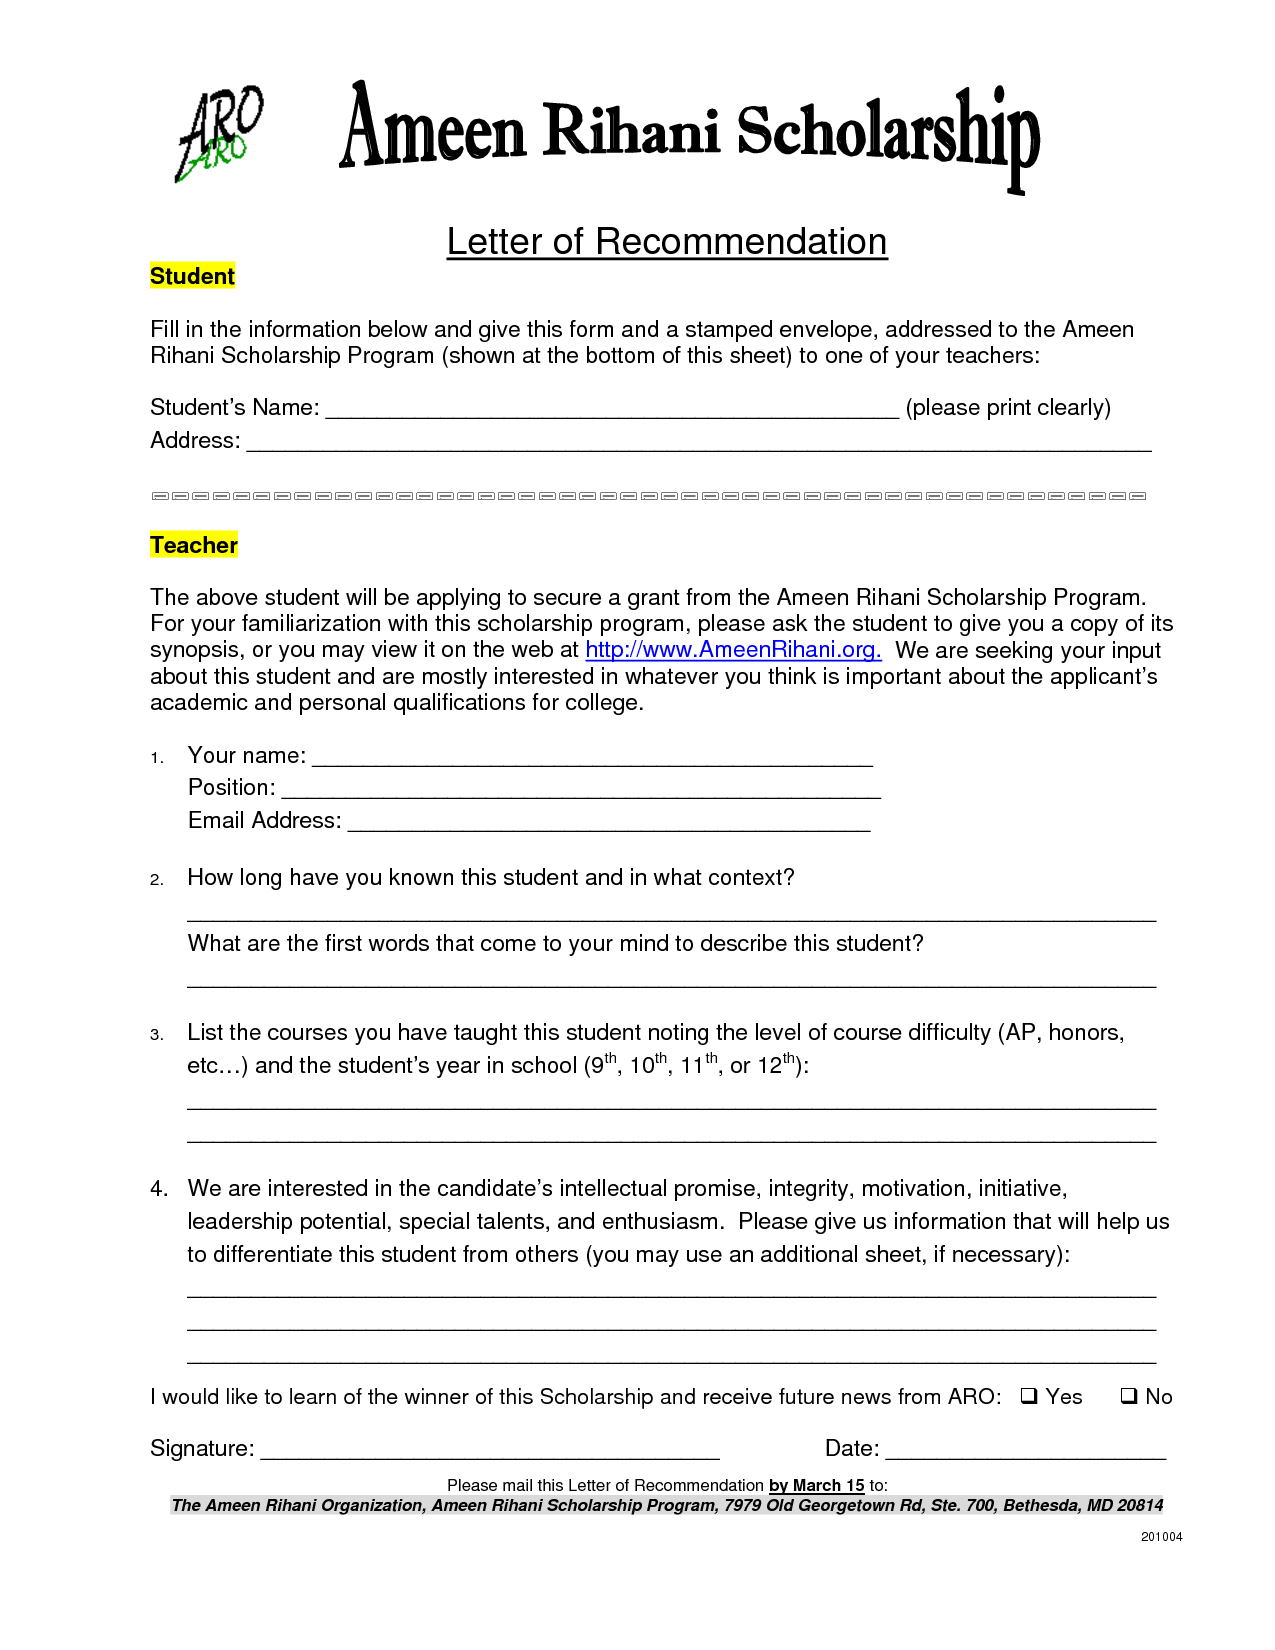 Recommendation Letter Sample For Scholarship From Teacher ...